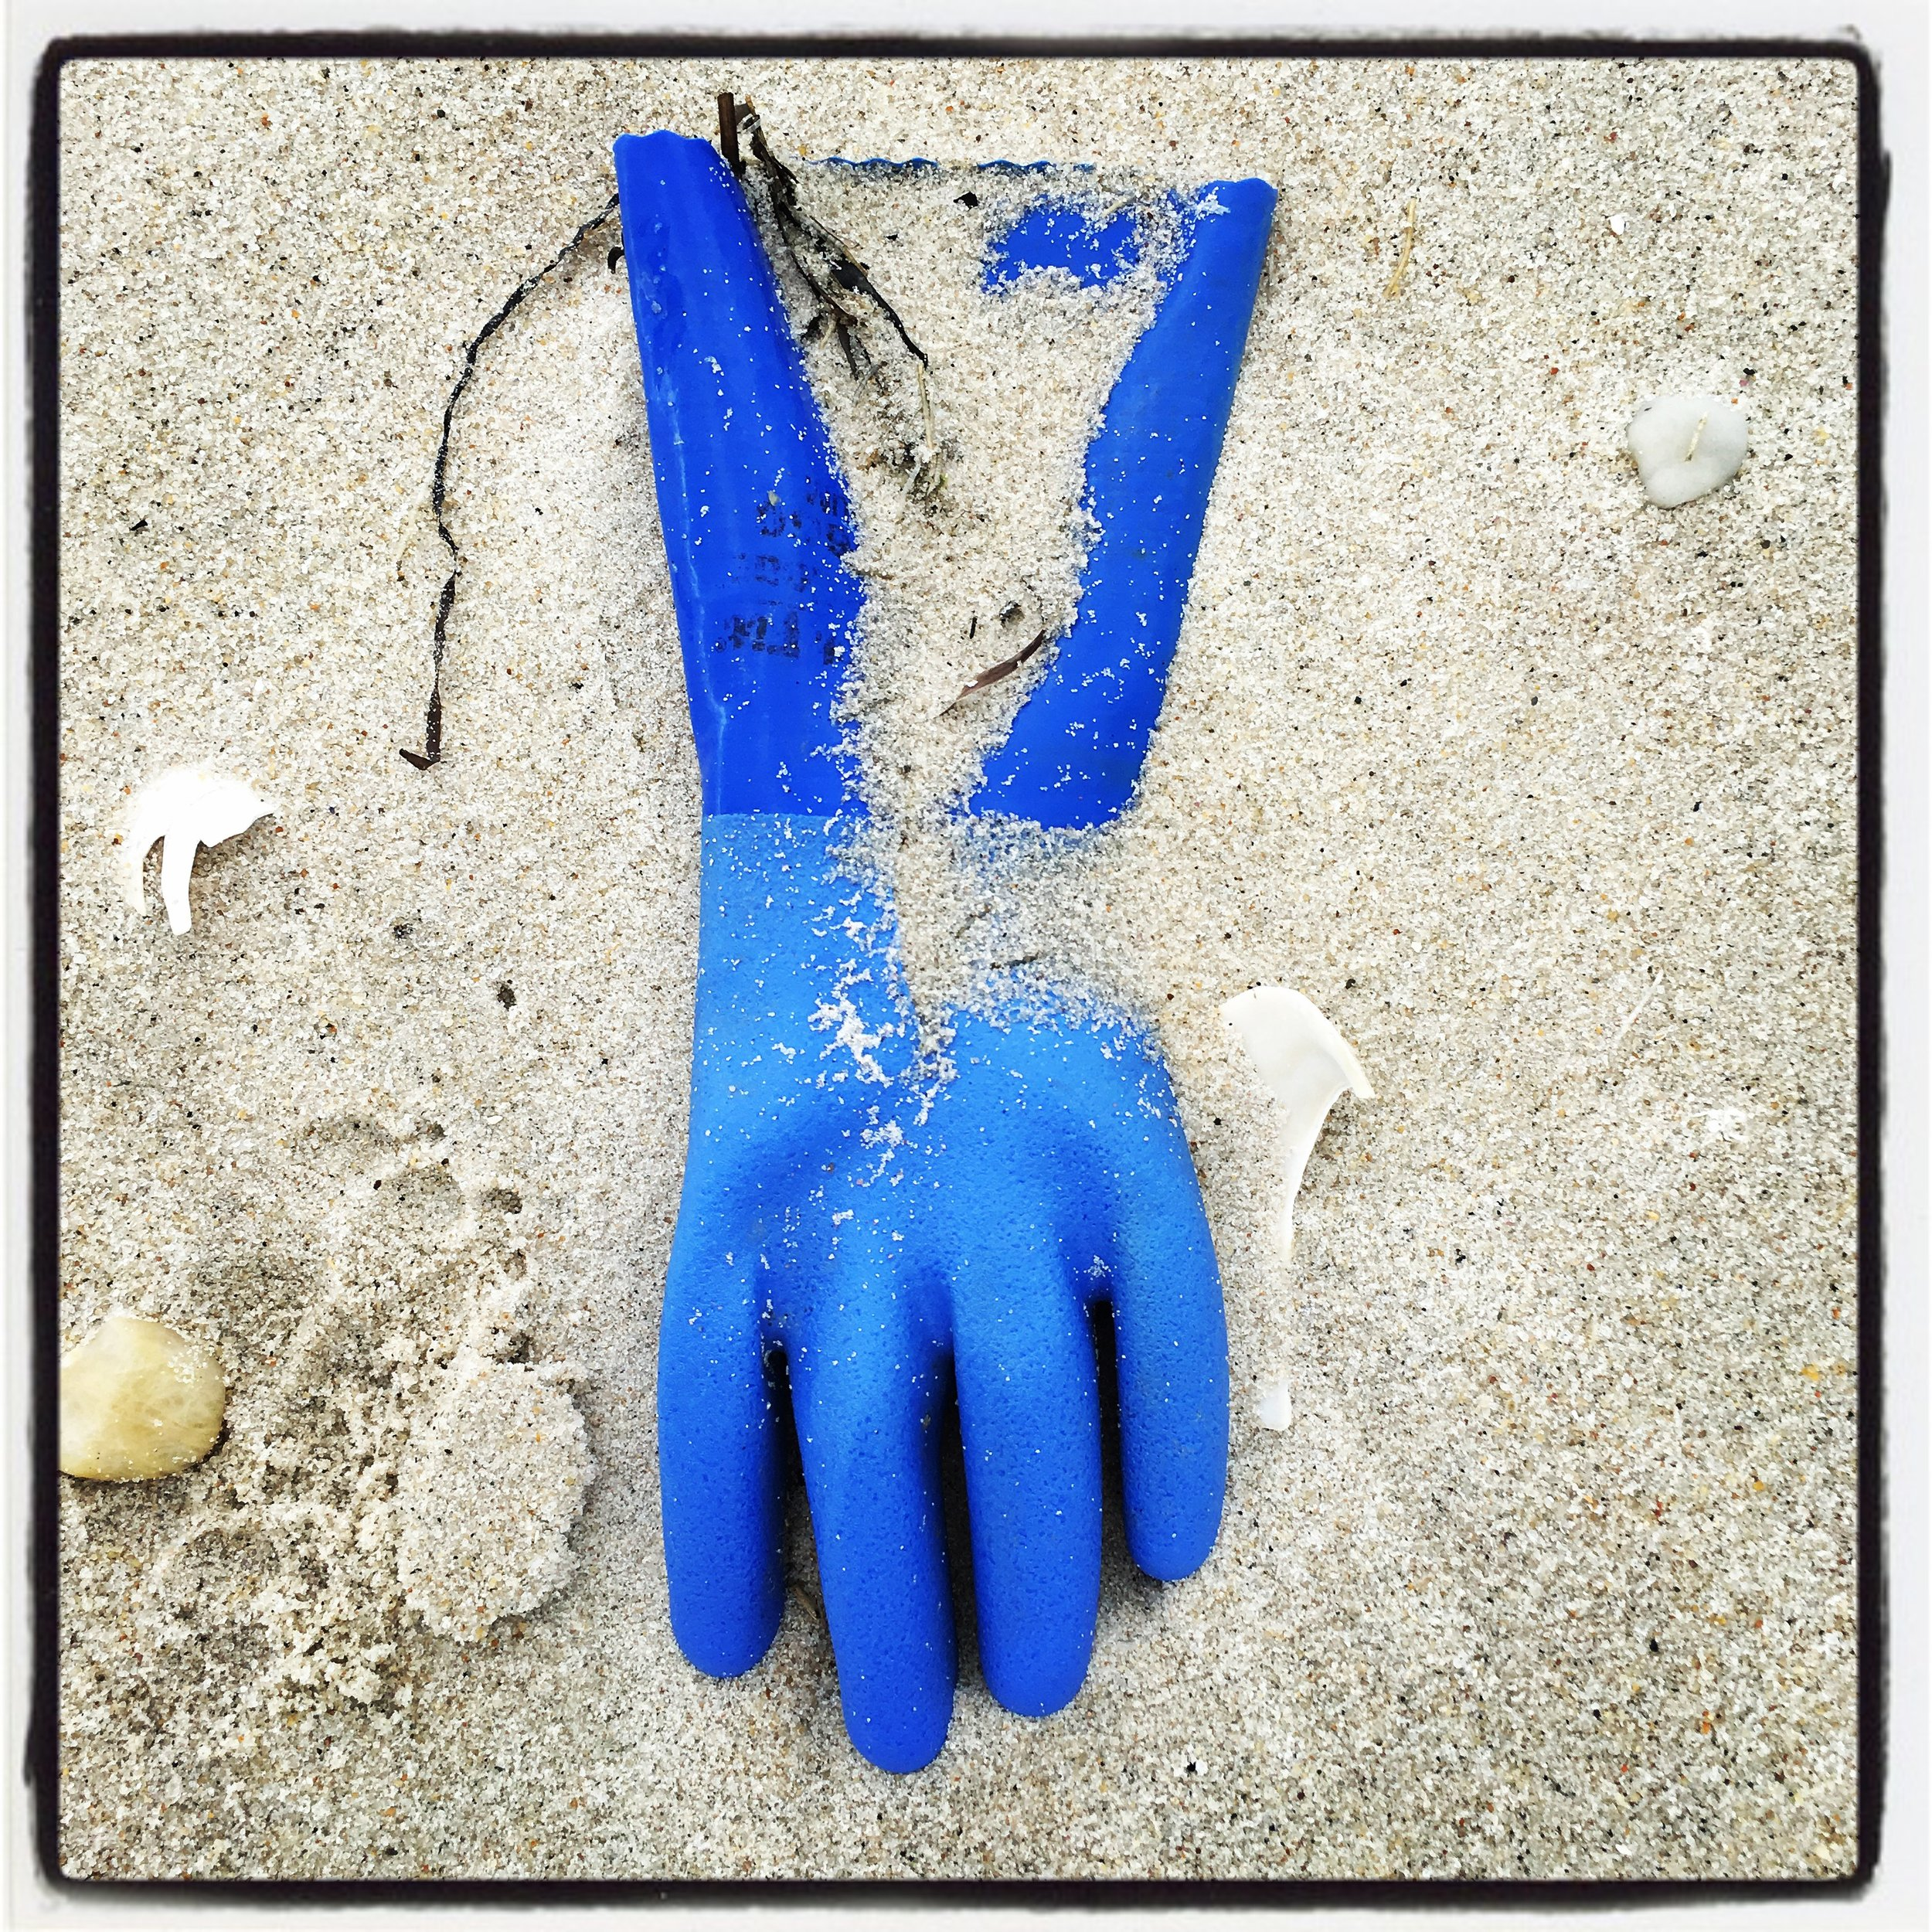 Blue Detritus: I'm always amazed at what washes up on a beach. Even trash can be beautiful.